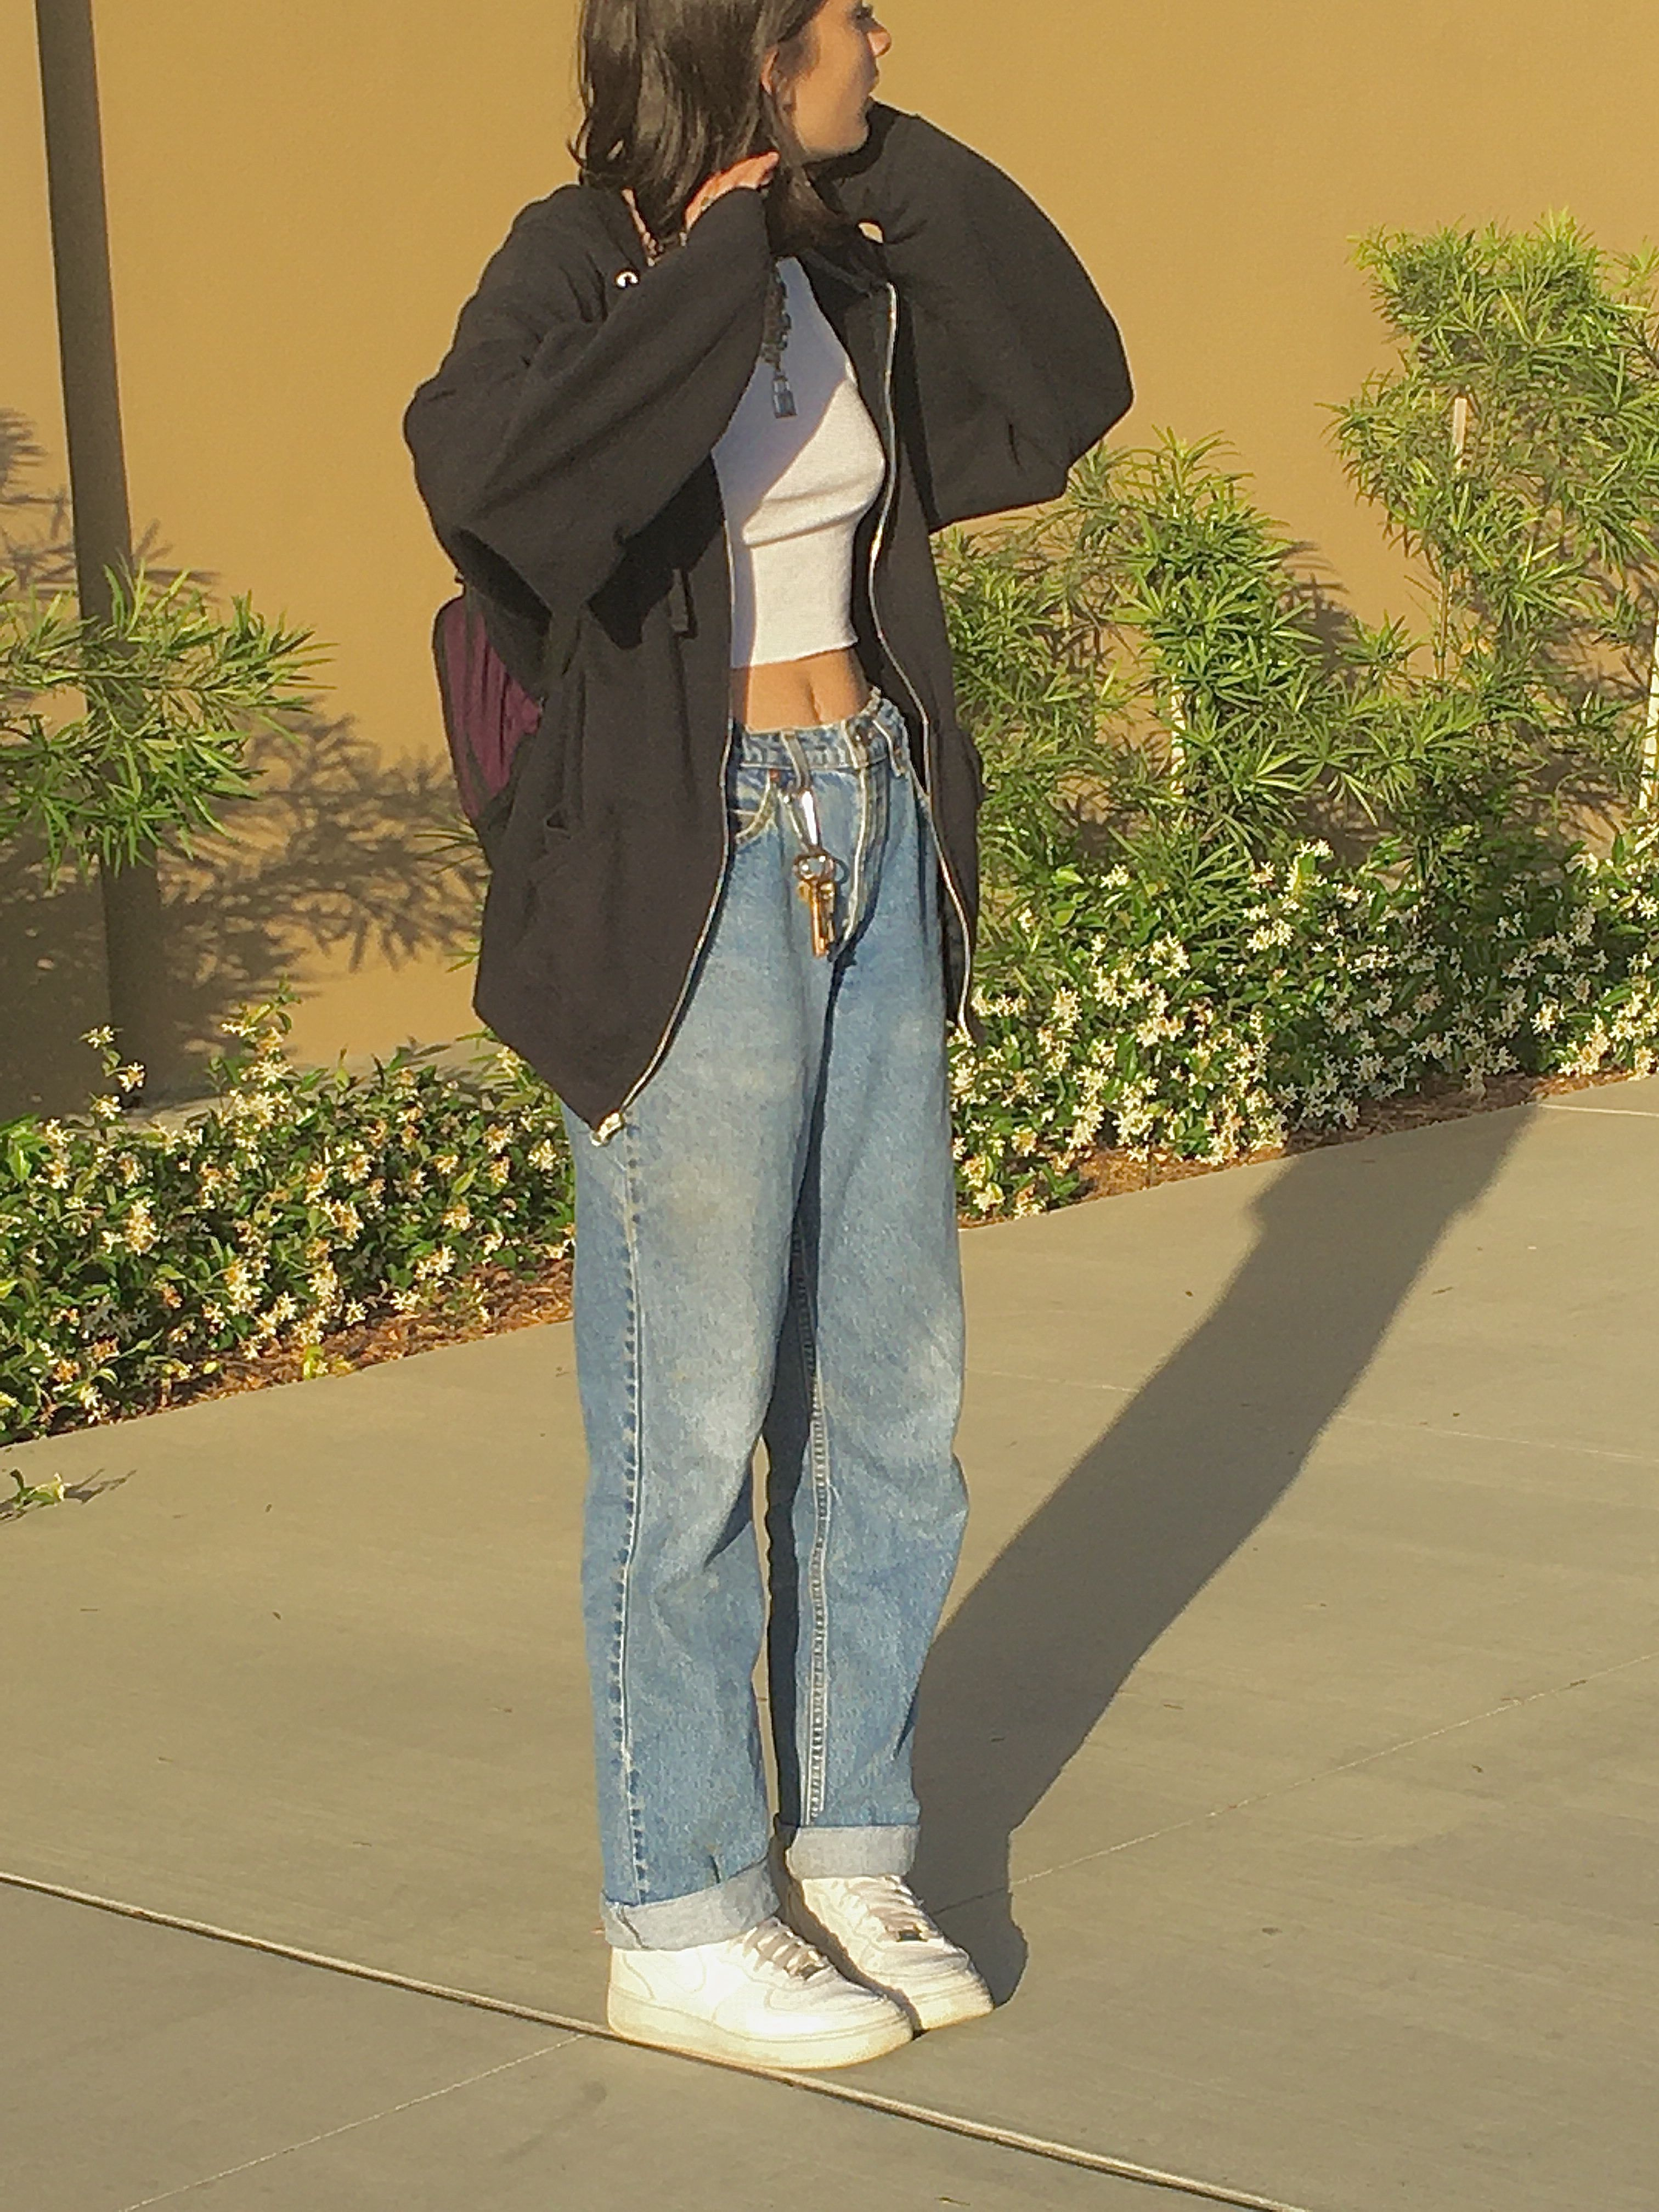 Pin By Abby Graves On Fits In 2020 Indie Outfits Skater Girl Outfits Retro Outfits